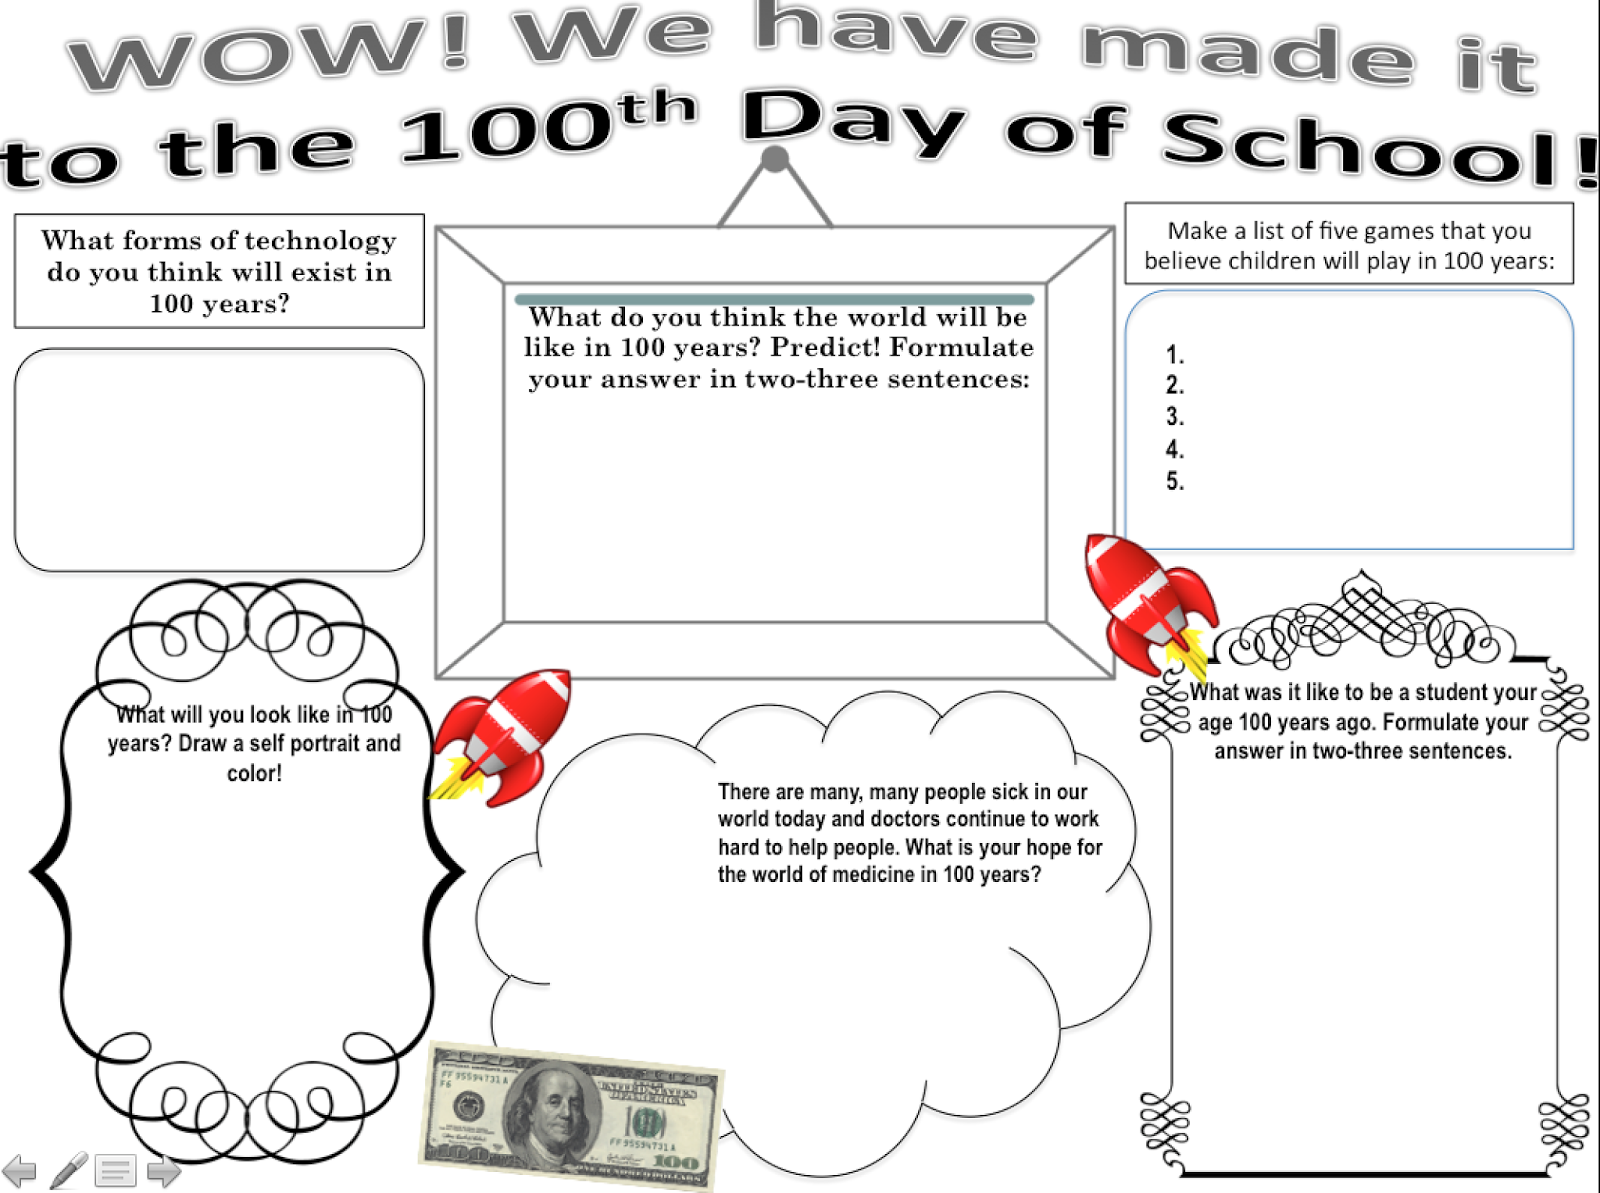 100th Day of School 2015 as The 100th Day of School